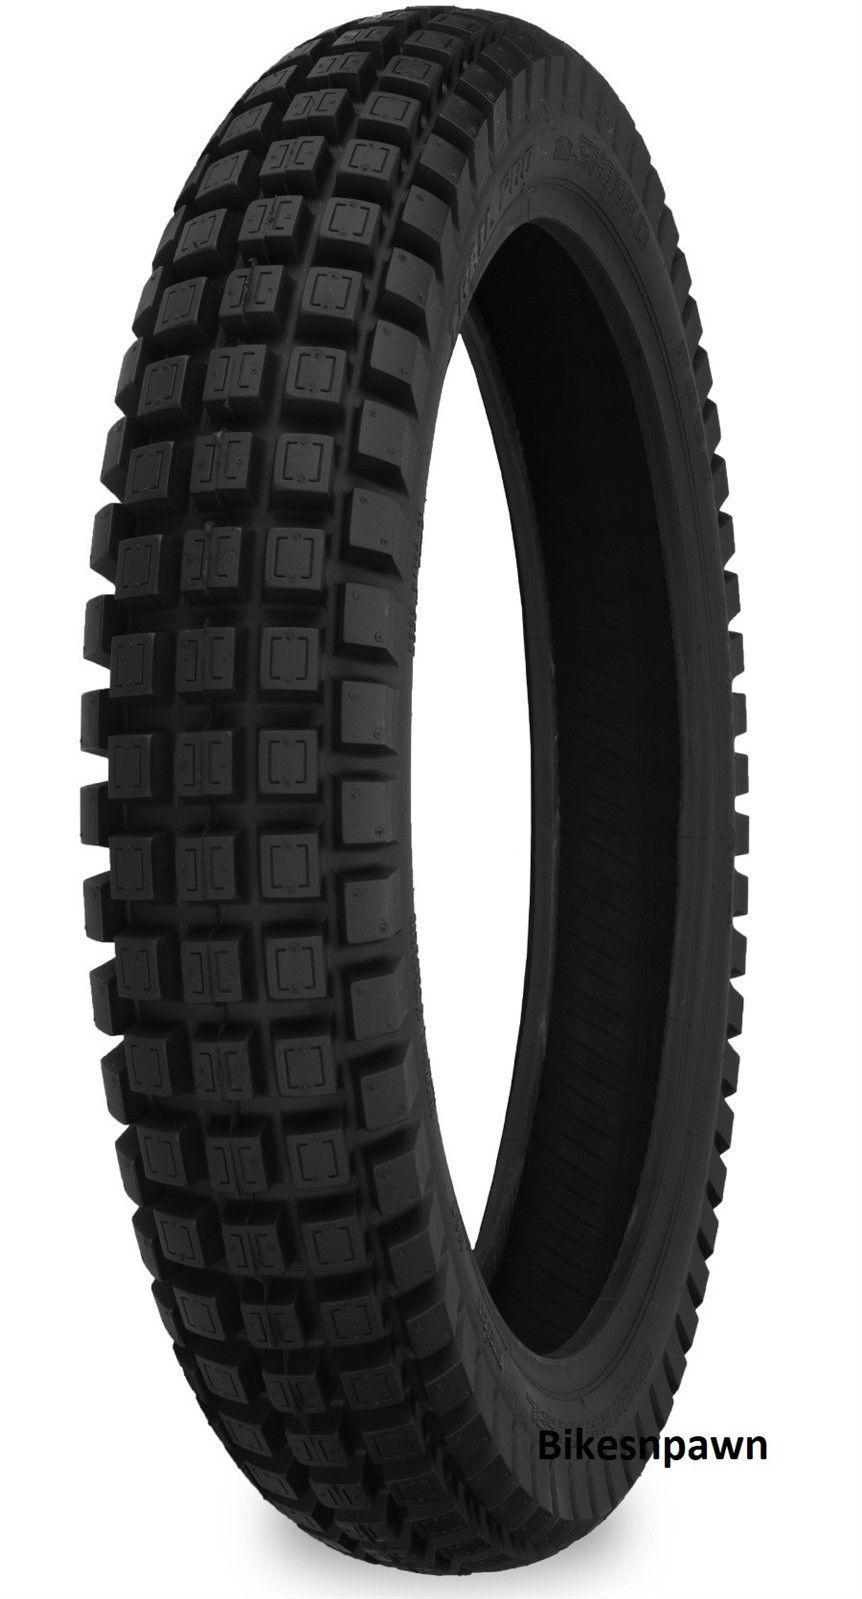 New Trail Pro 255 110/90R-18 Rear Trials Soft Radial DOT Motorcycle Tire L 61